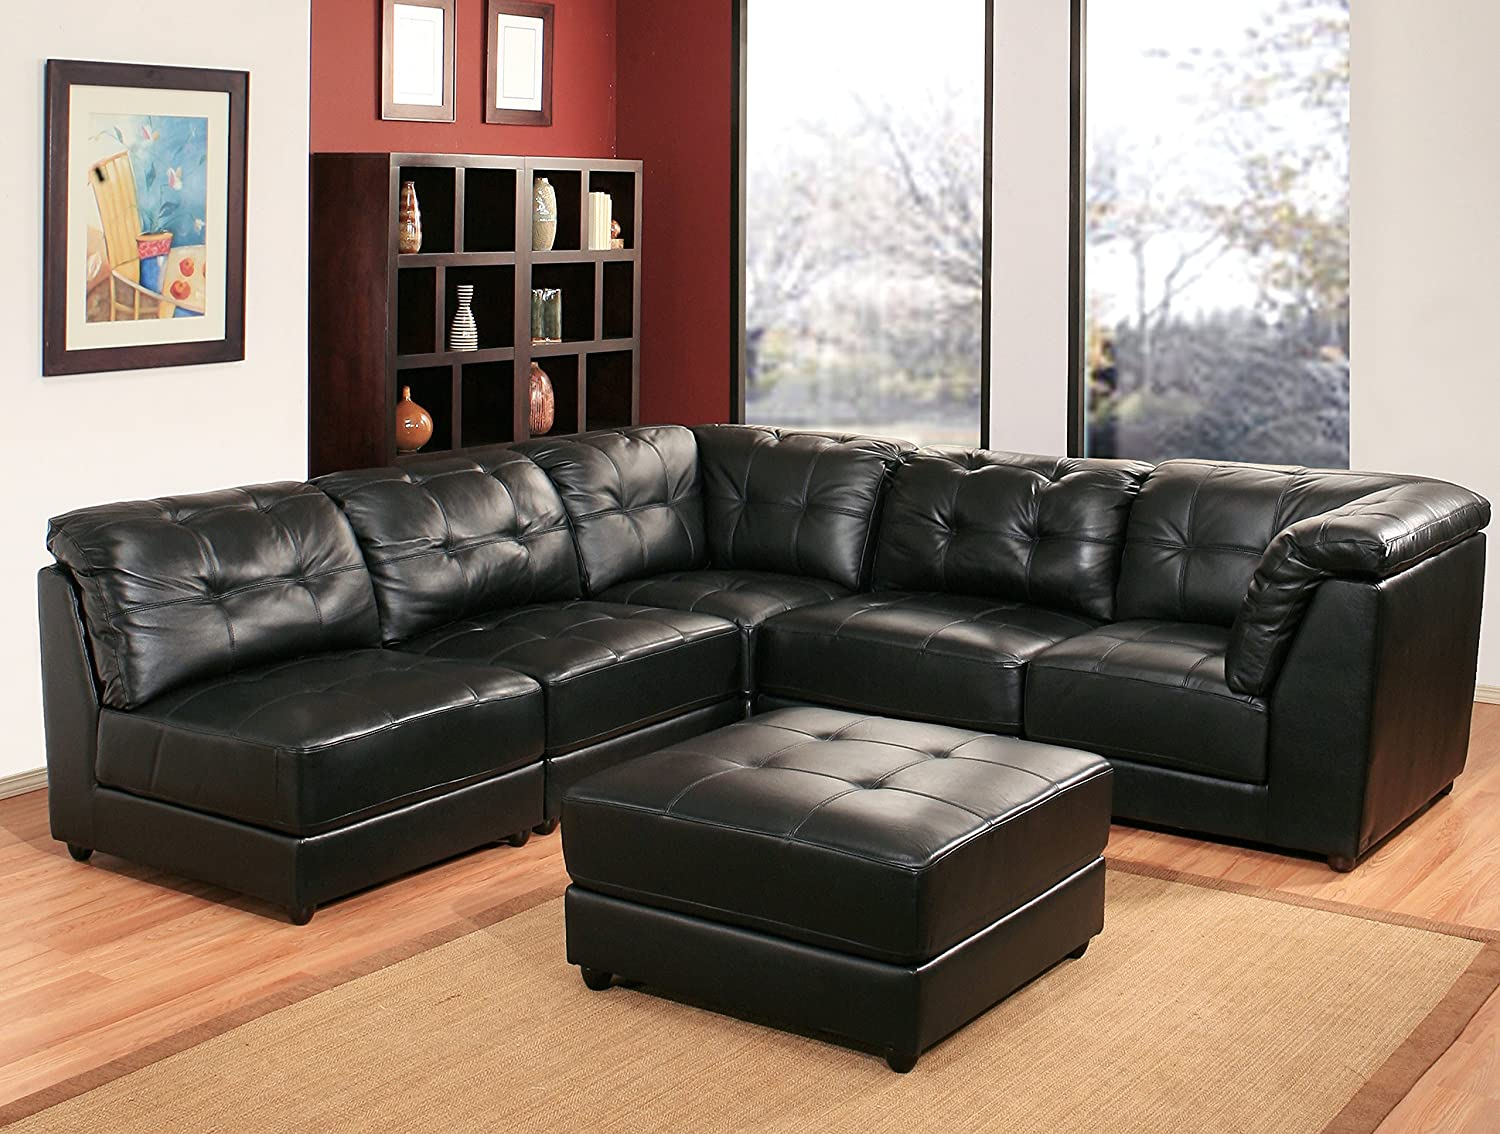 Amazon.com Abbyson Donovan 5-Piece Modular Leather Sectional Sofa Black Home u0026 Kitchen : abbyson living sectional - Sectionals, Sofas & Couches